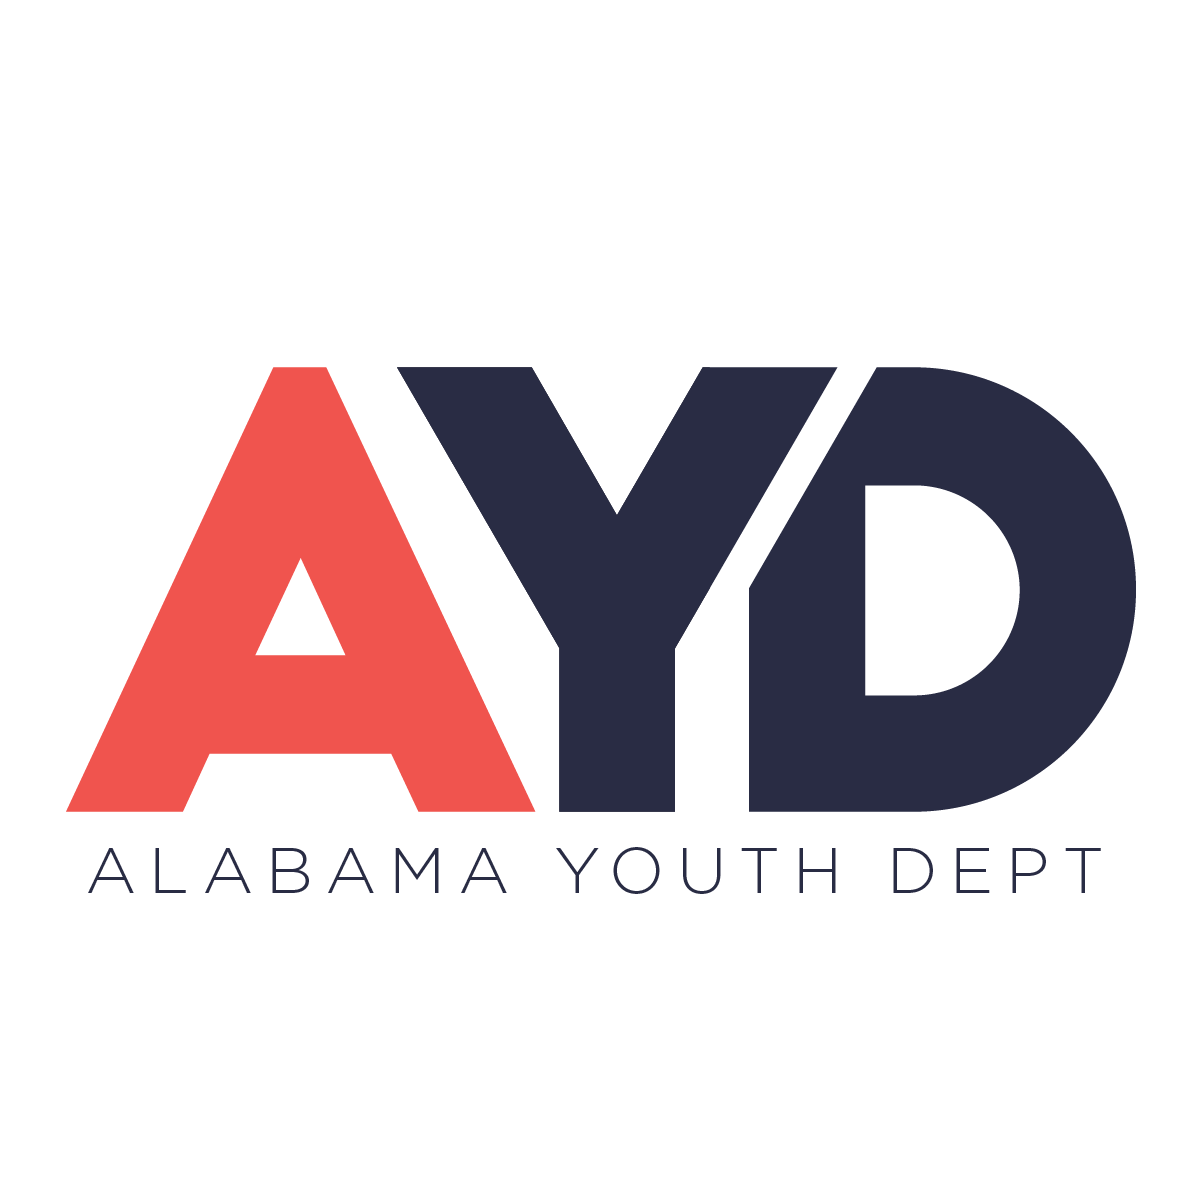 Alabama Youth Dept